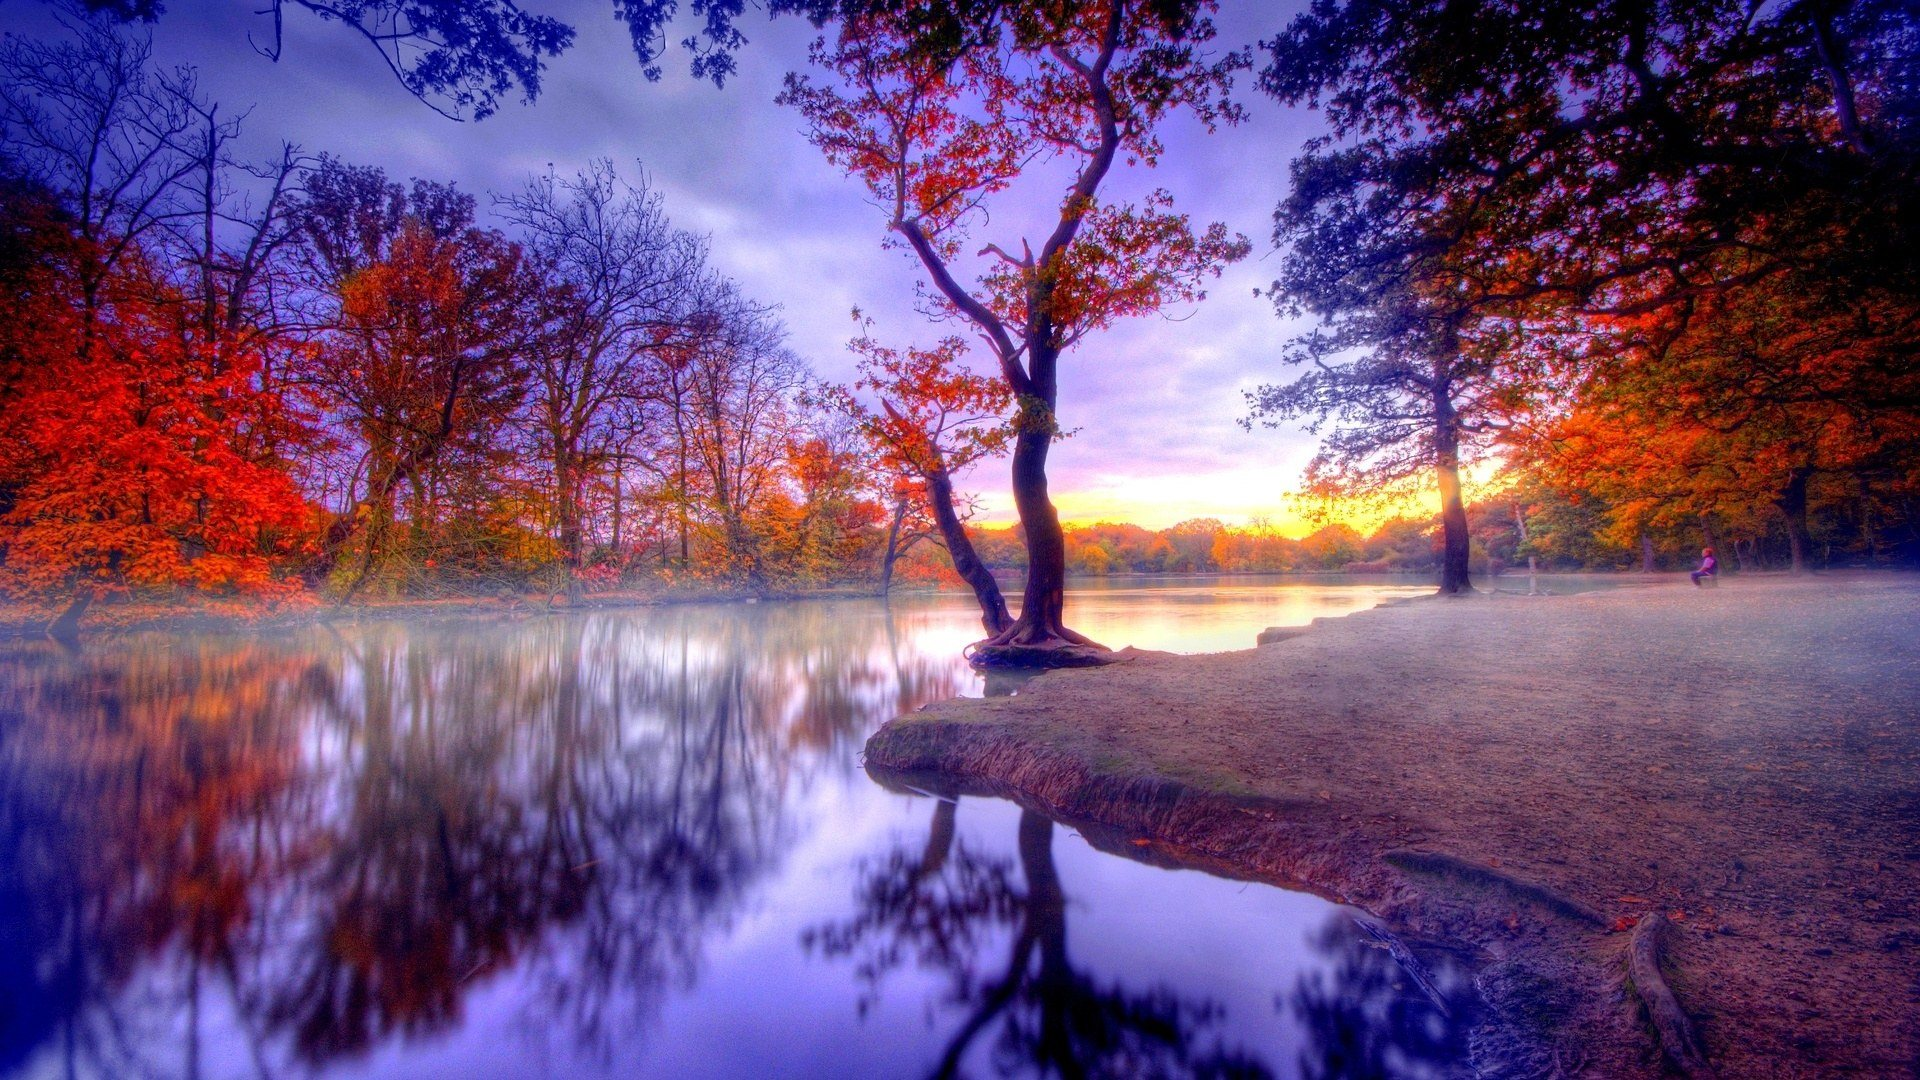 Autumn Landscape Full HD Desktop Wallpapers 1080p 1920x1080